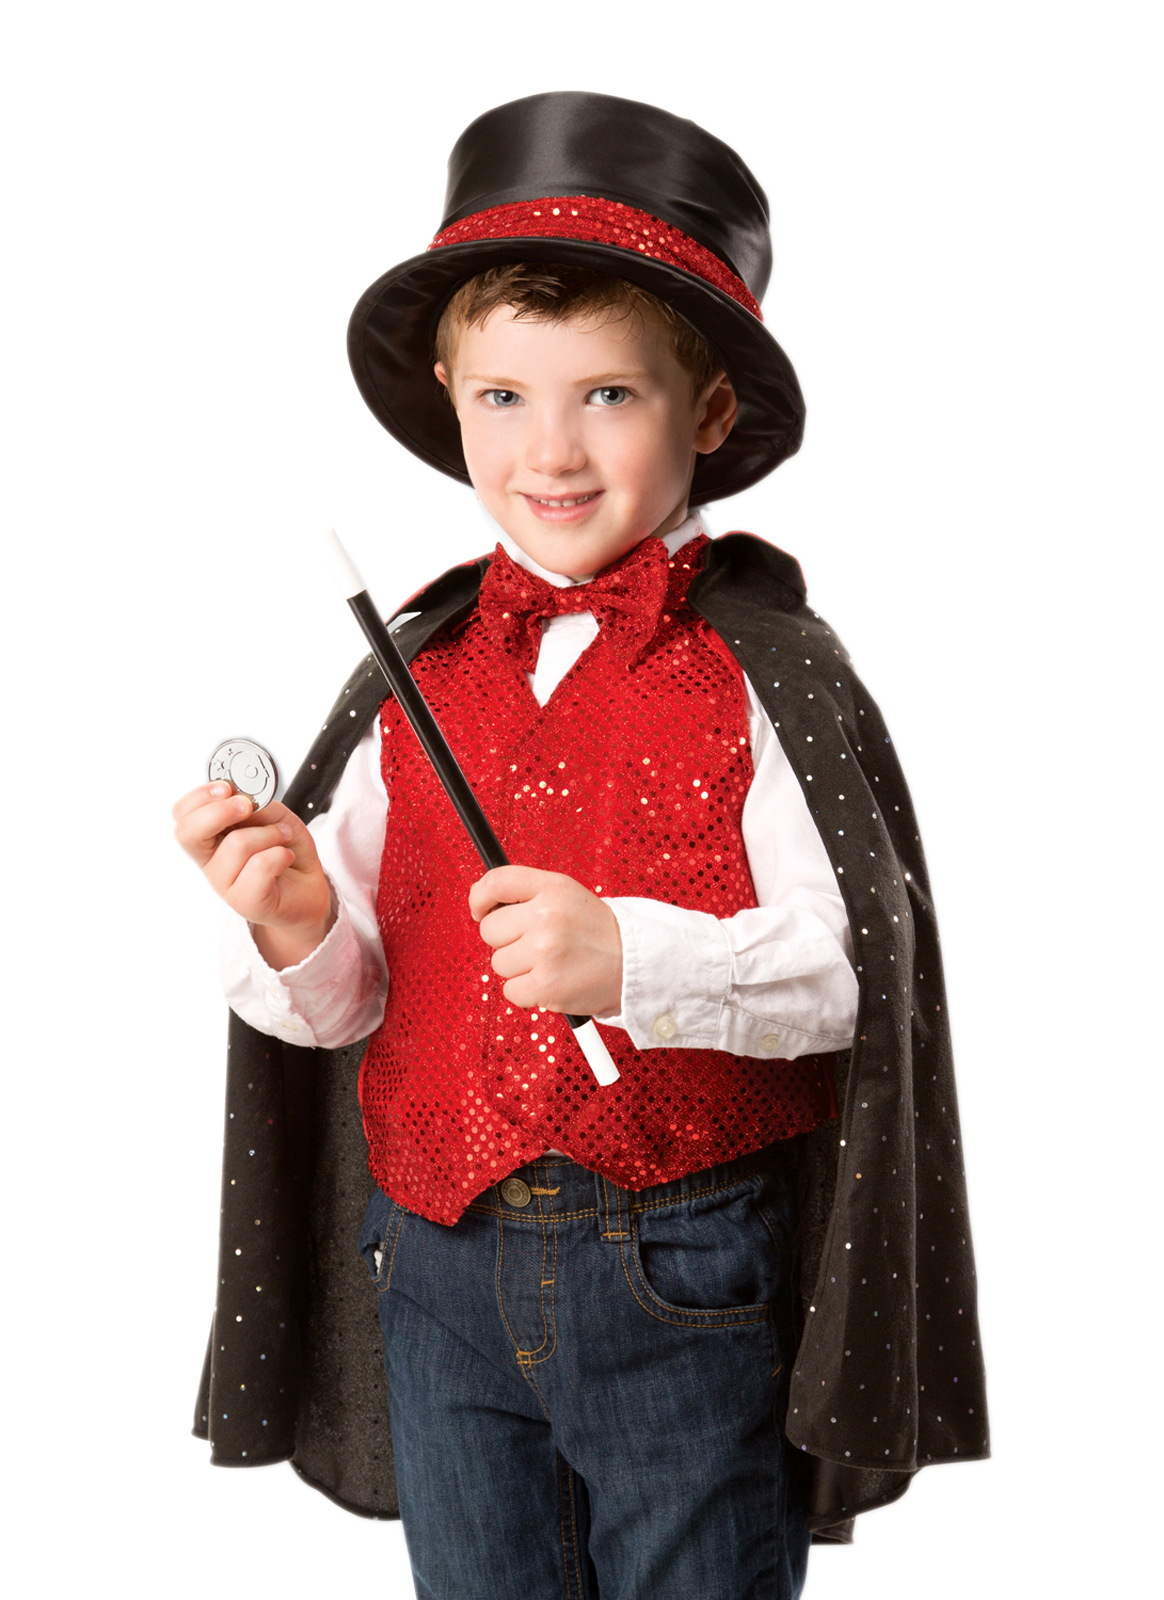 Childu0027s Magician Costume with Top Hat. Zoom  sc 1 st  Little Dress Up Shop & Boys or Girls Magician Costume with Top Hat